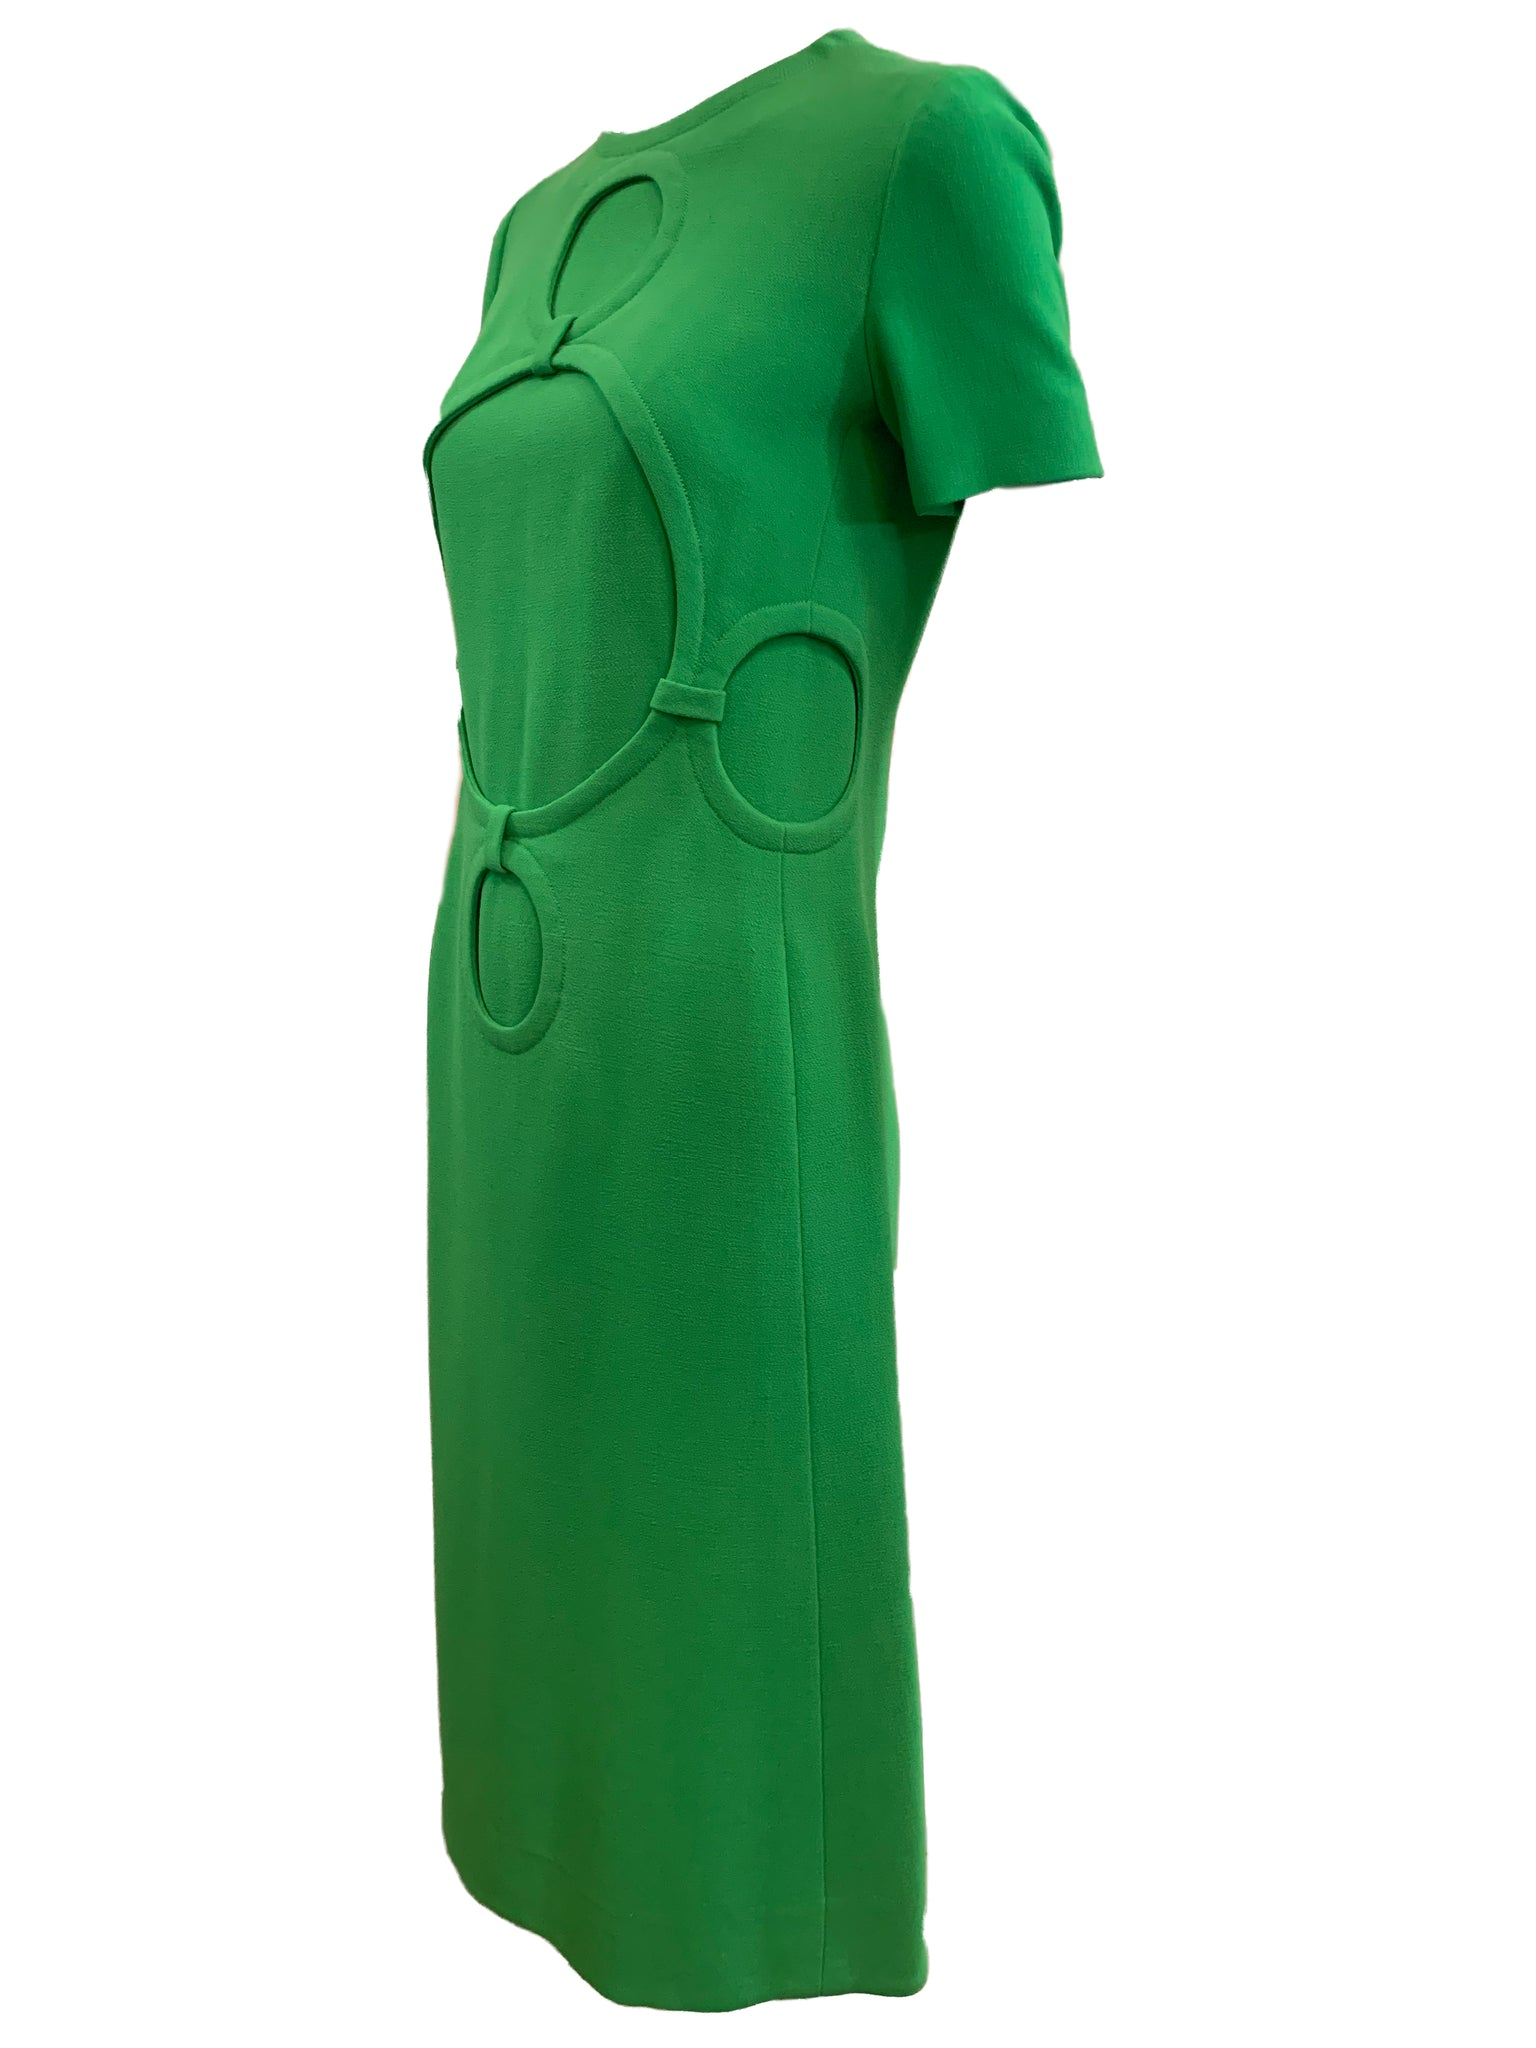 Balmain couture 60s Dress Lime Green Mod SIDE 2 of 5